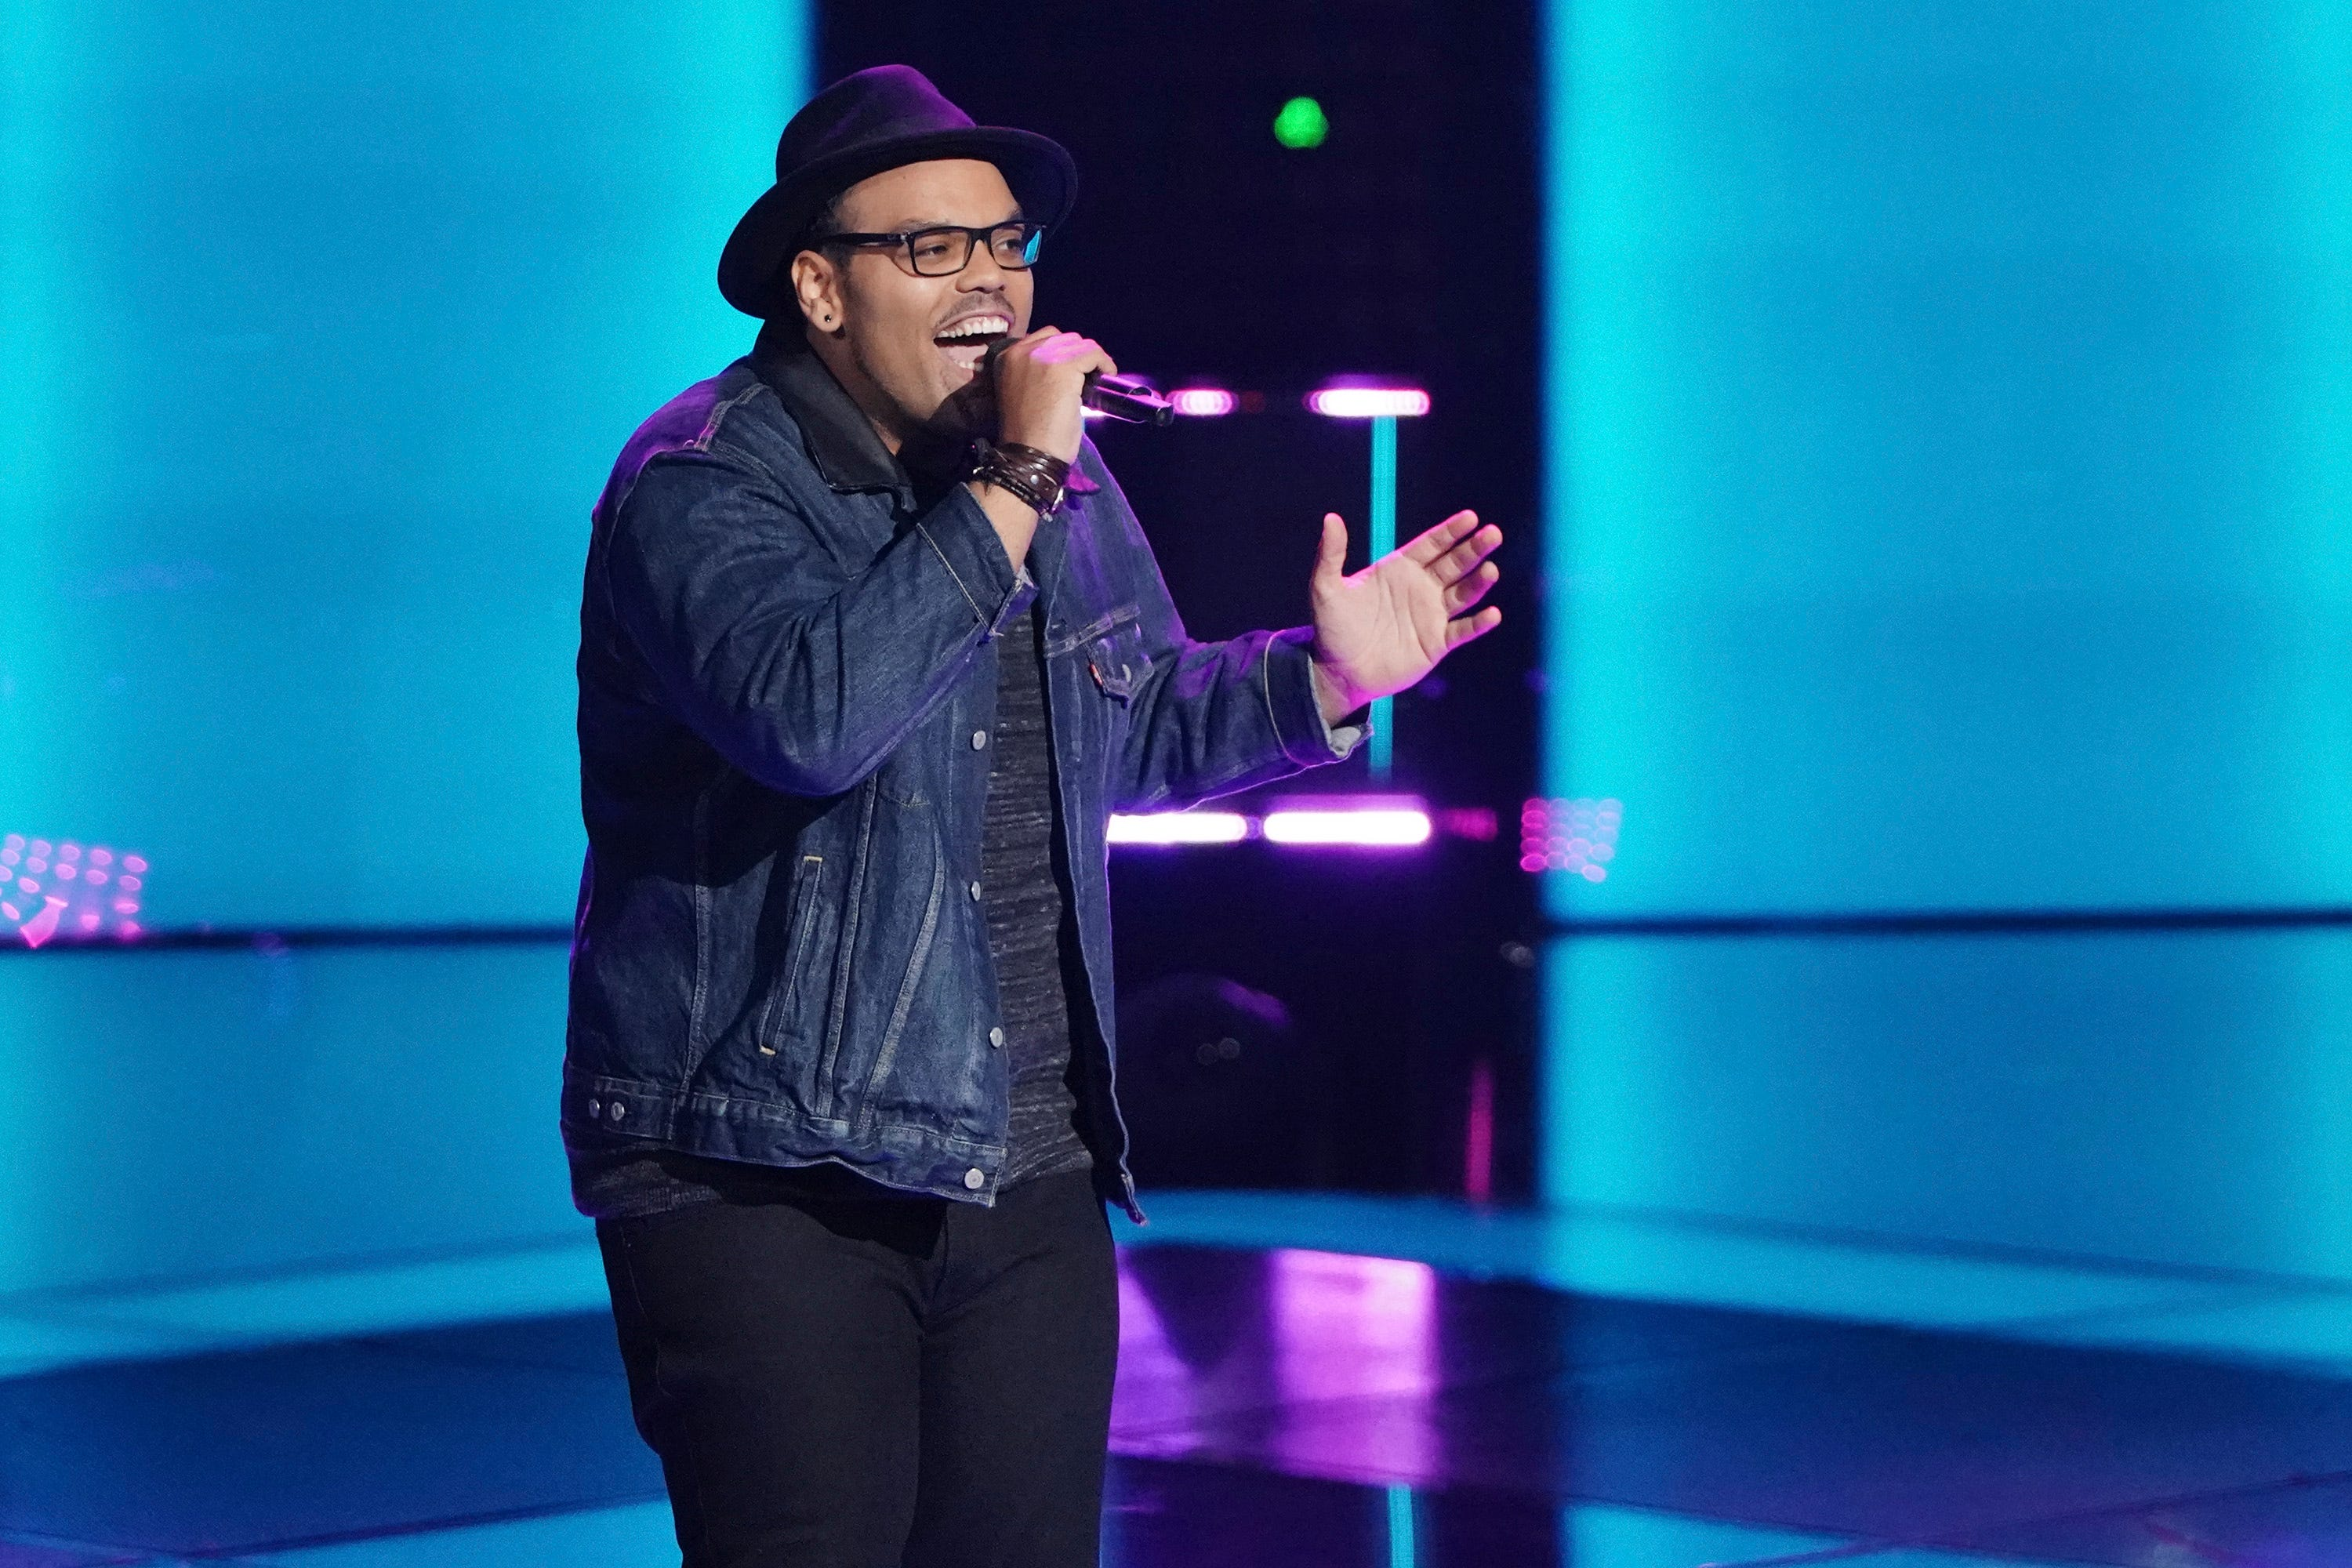 """Fishersville's Matt Johnson makes it to the battle rounds on """"The Voice"""" after auditioning on the show on Monday, October 15, 2018. """""""